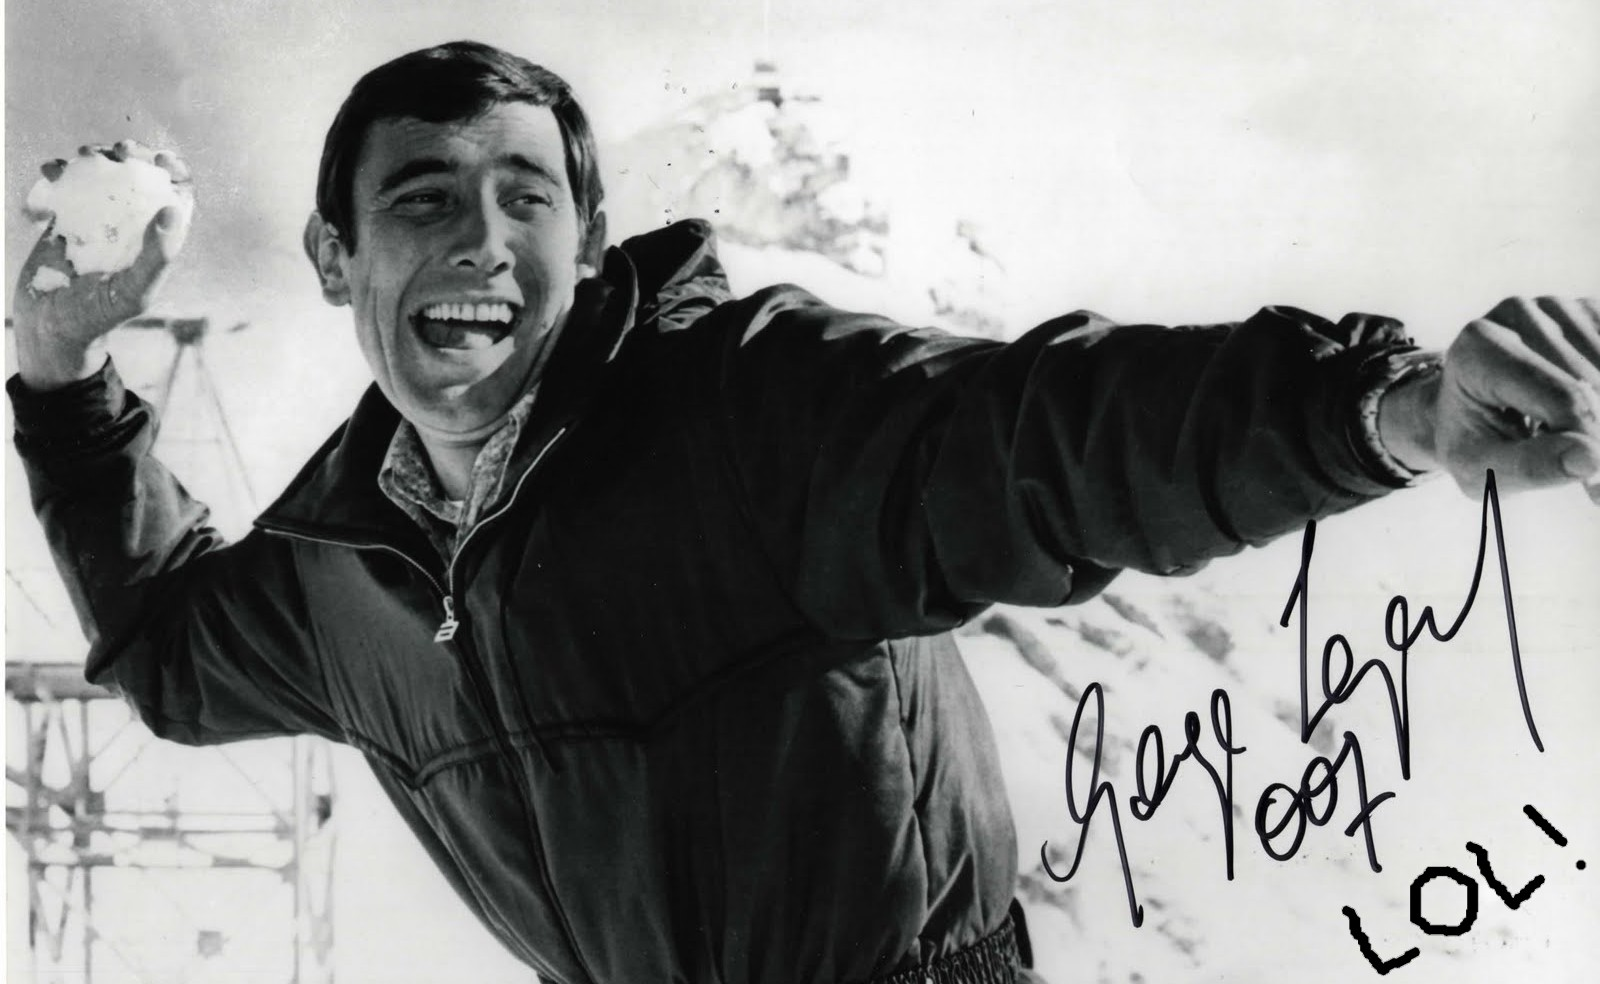 george lazenby 2014george lazenby bond, george lazenby james bond, george lazenby legit, george lazenby net worth, george lazenby, george lazenby imdb, george lazenby 007, george lazenby wiki, george lazenby height, george lazenby 2014, george lazenby twitter, george lazenby best bond, george lazenby bruce lee, george lazenby gettysburg, george lazenby diana rigg, george lazenby interview, george lazenby pam shriver, george lazenby advert, george lazenby dubbed